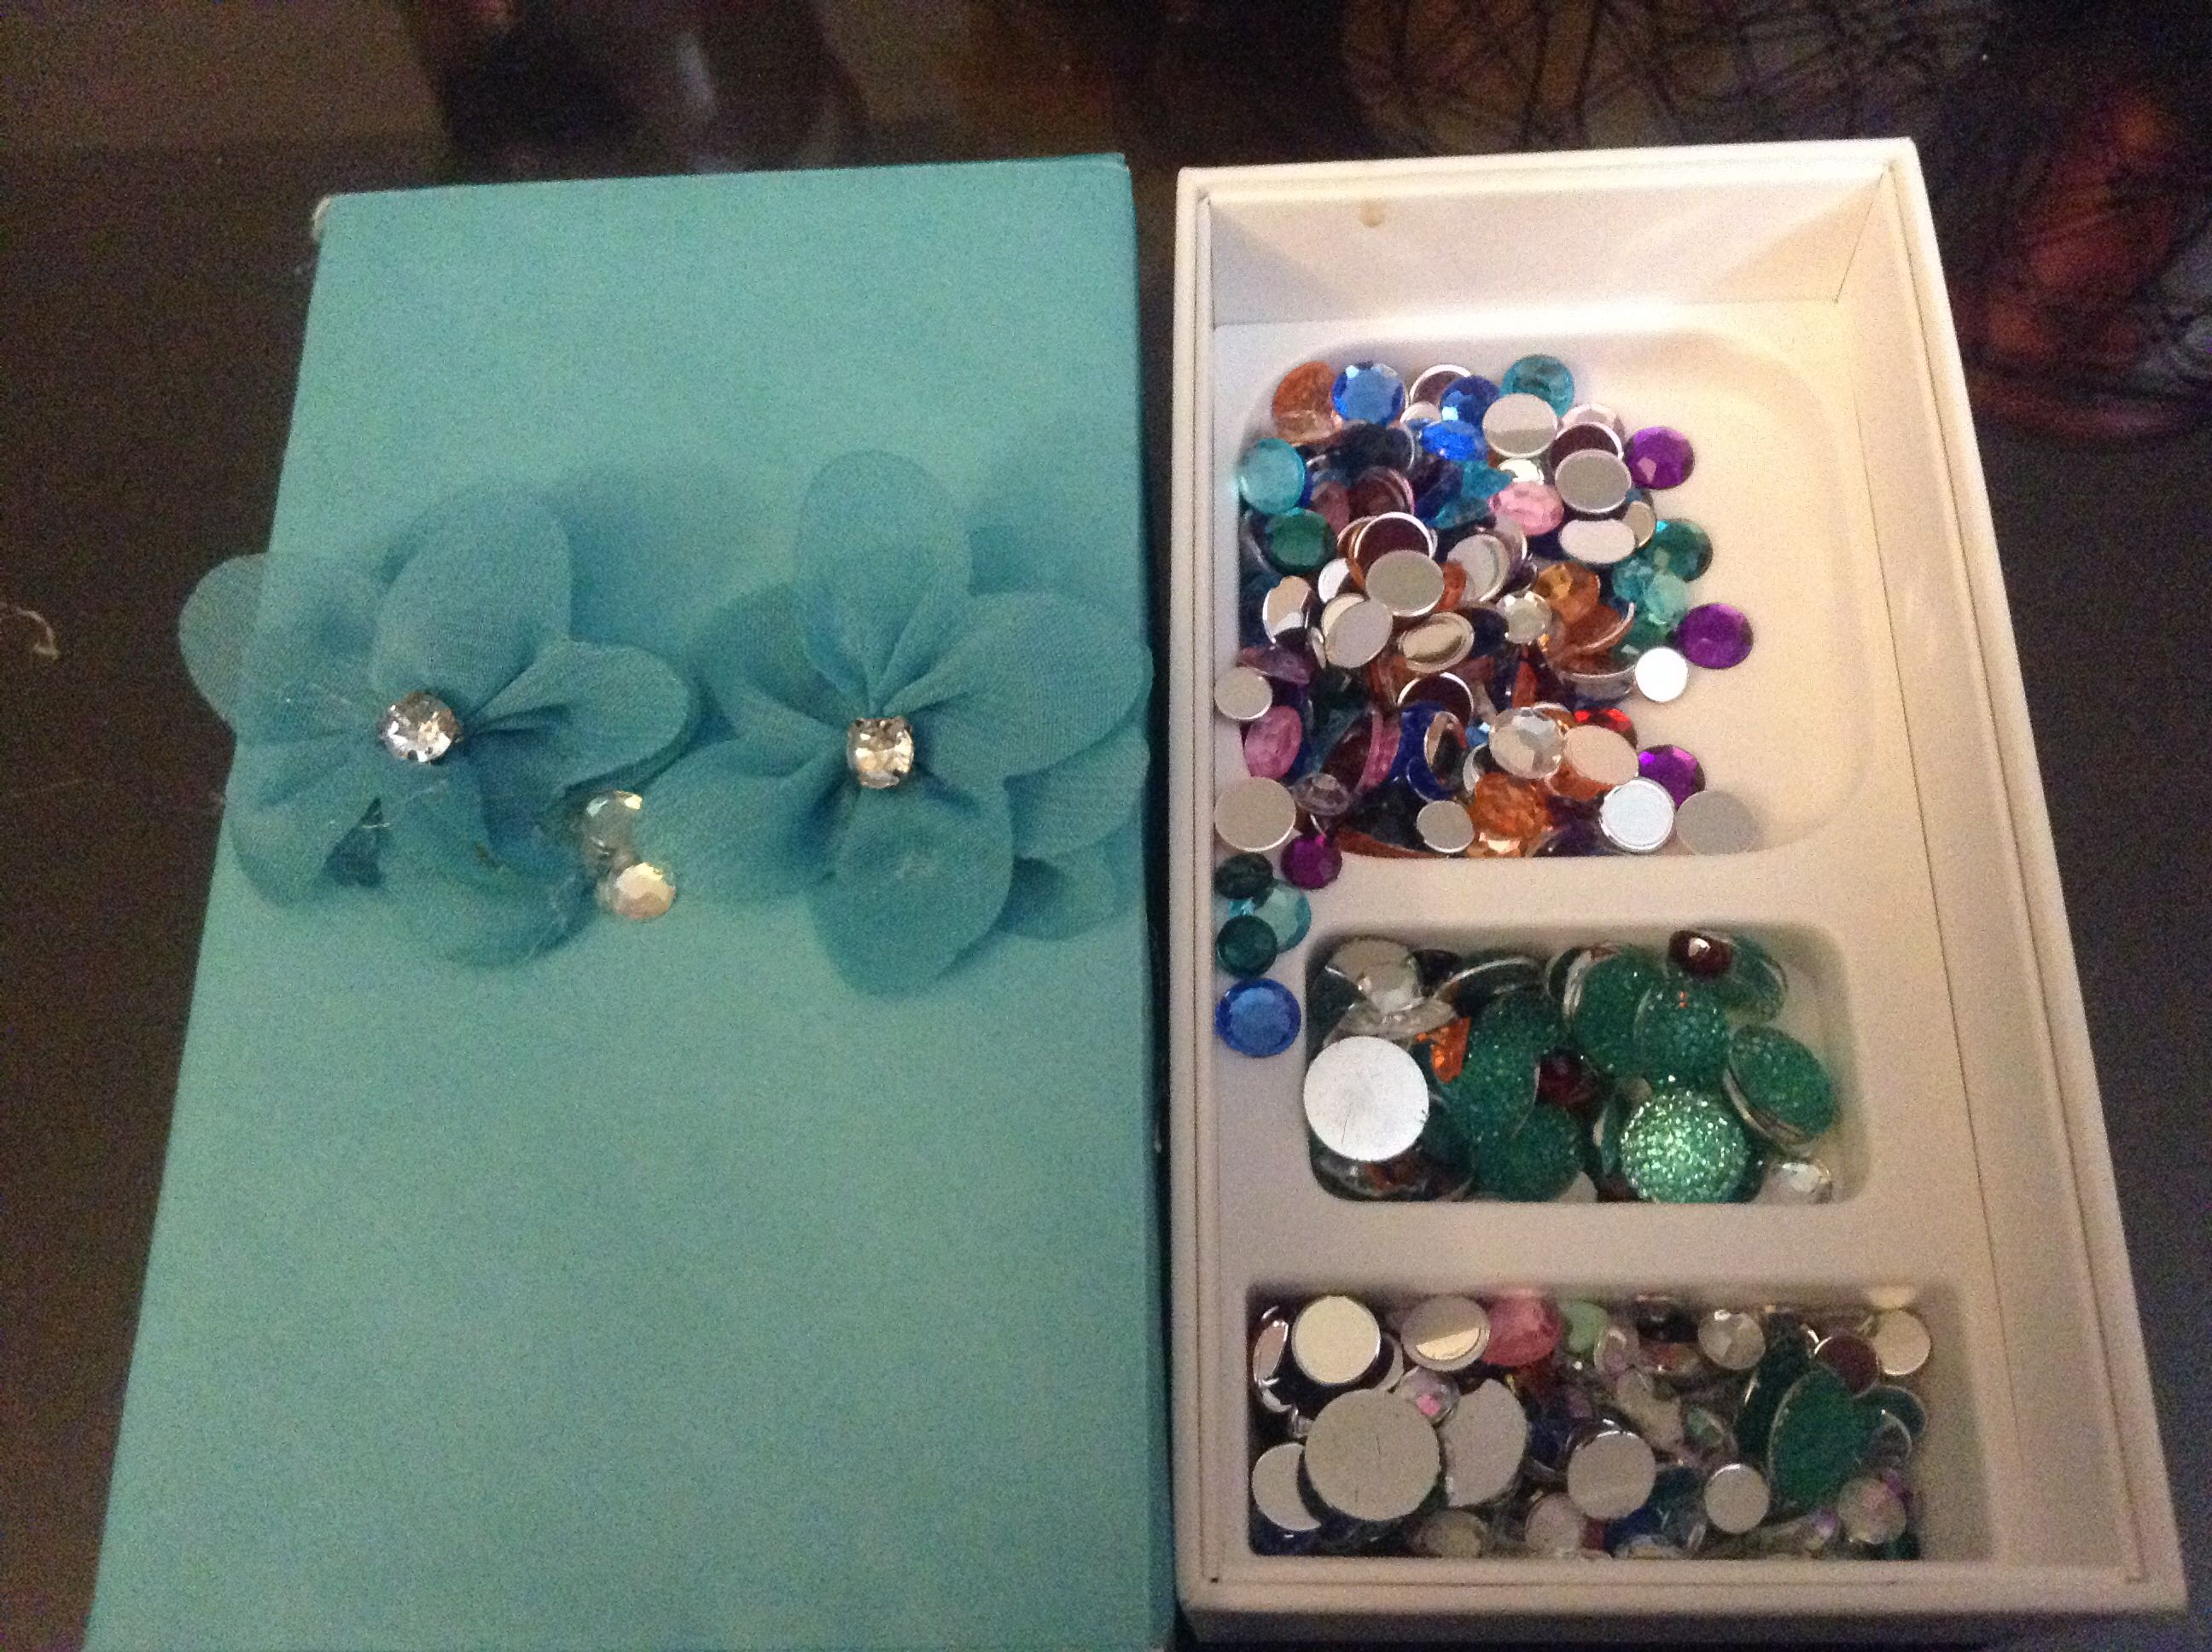 My newly upcycled iPhone 5 box that now holds my sequins and glass beads. I covered the box with a blue envelope that was hanging around the house. After that, I glued the little blue flowers and rhinestones onto the front of it.